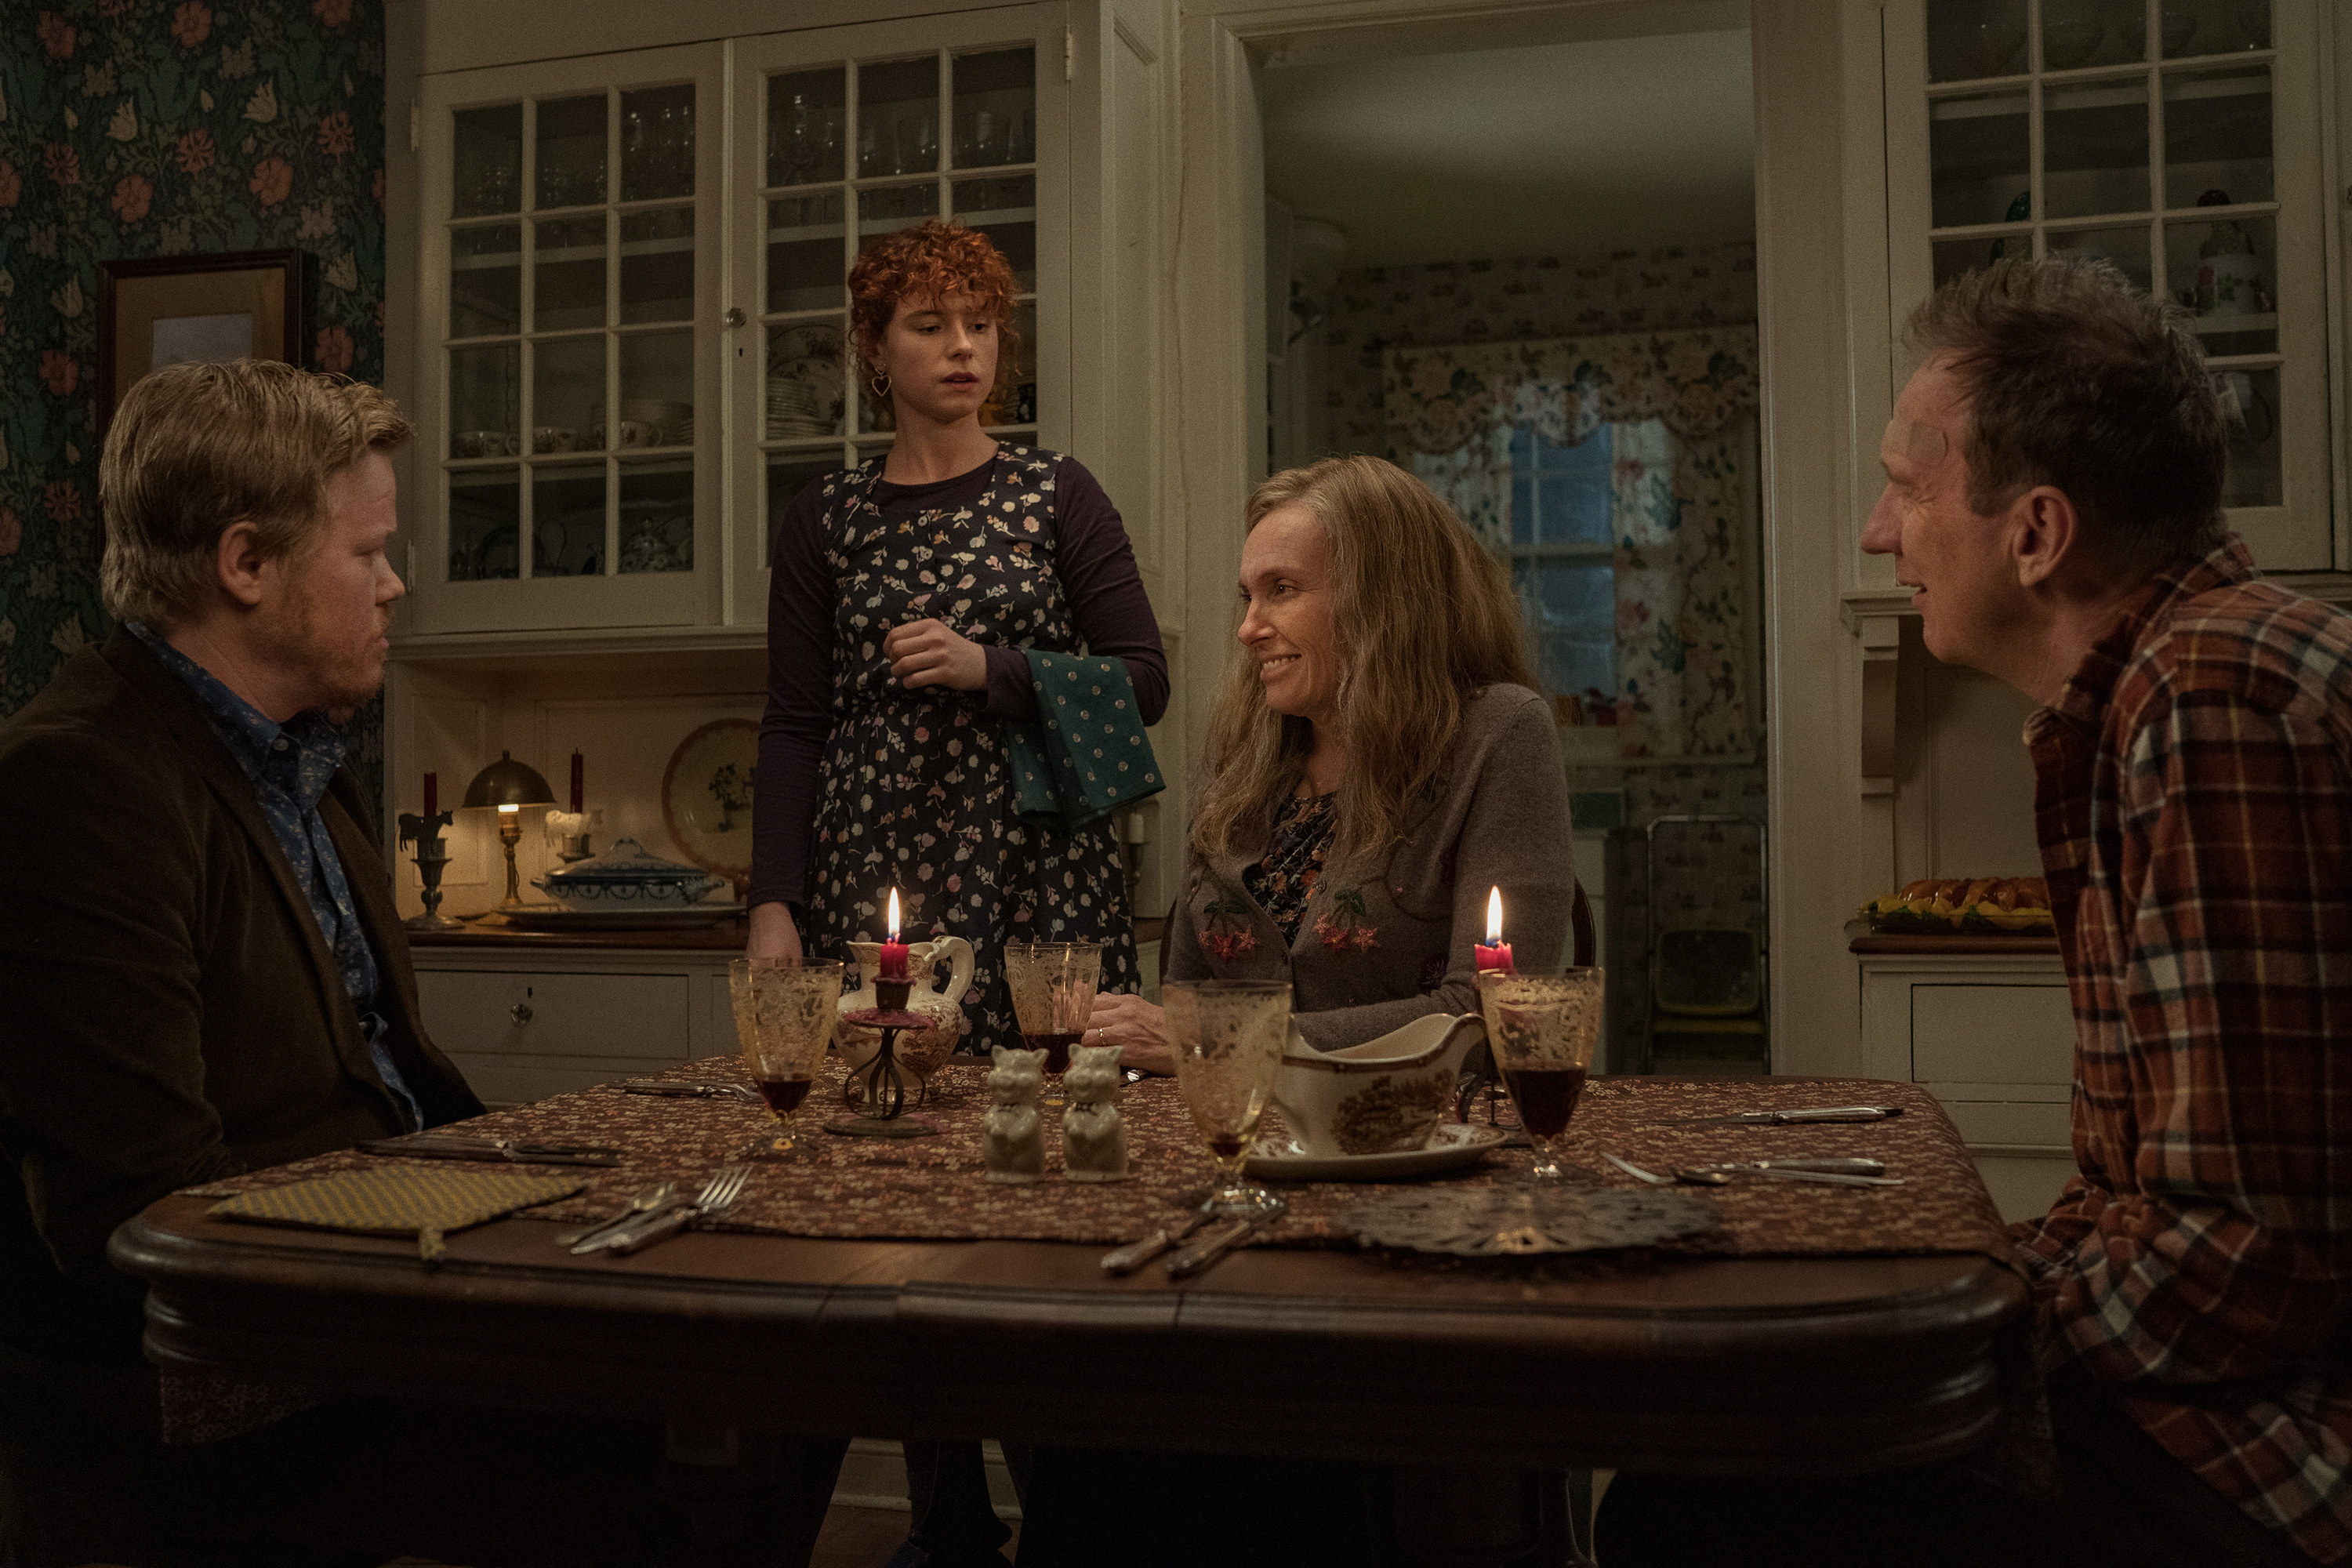 Jesse Plemons as Jake, Jessie Buckley as Young Woman, Toni Collette as Mother, David Thewlis as Father in Im Thinking Of Ending Things